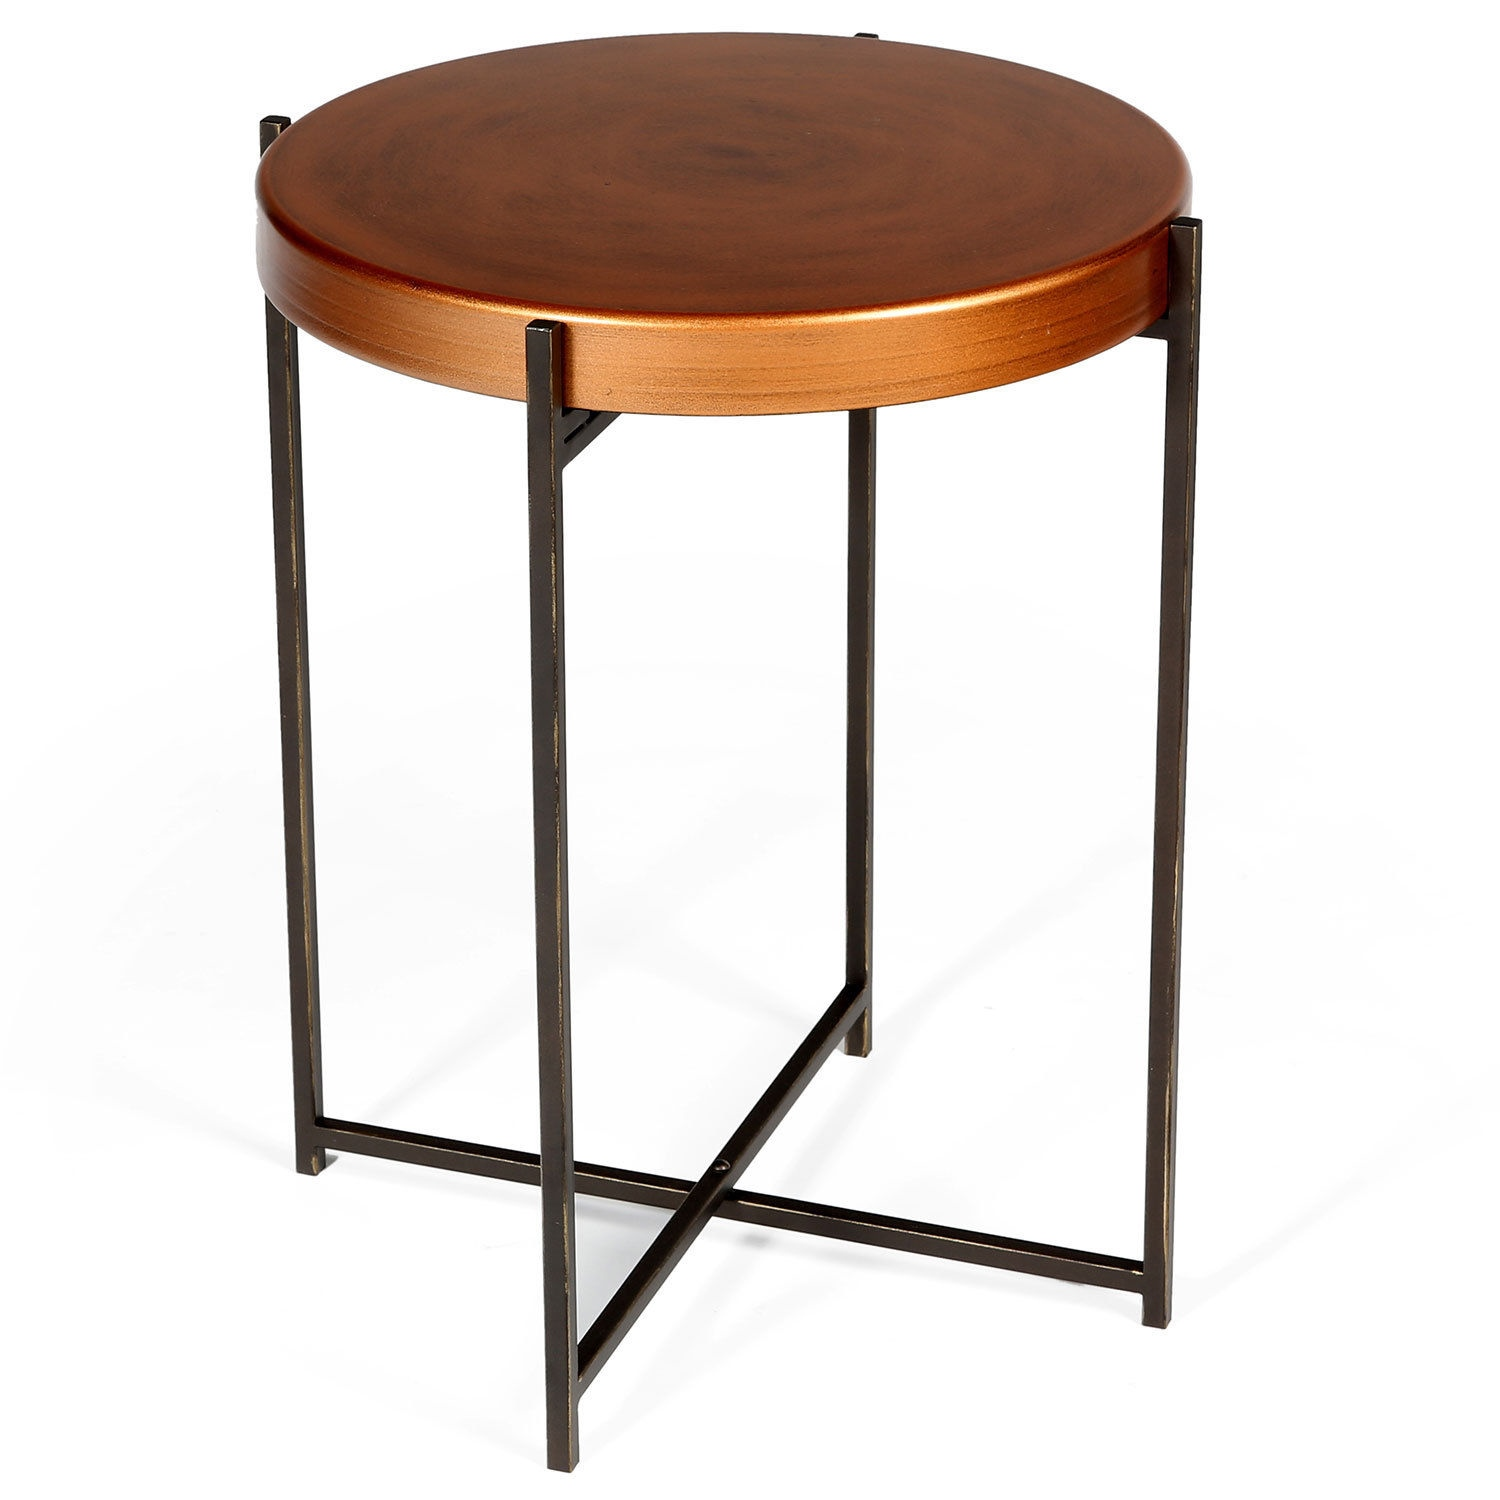 Copper Round Side Table Lamp Table Bedside Table Folding